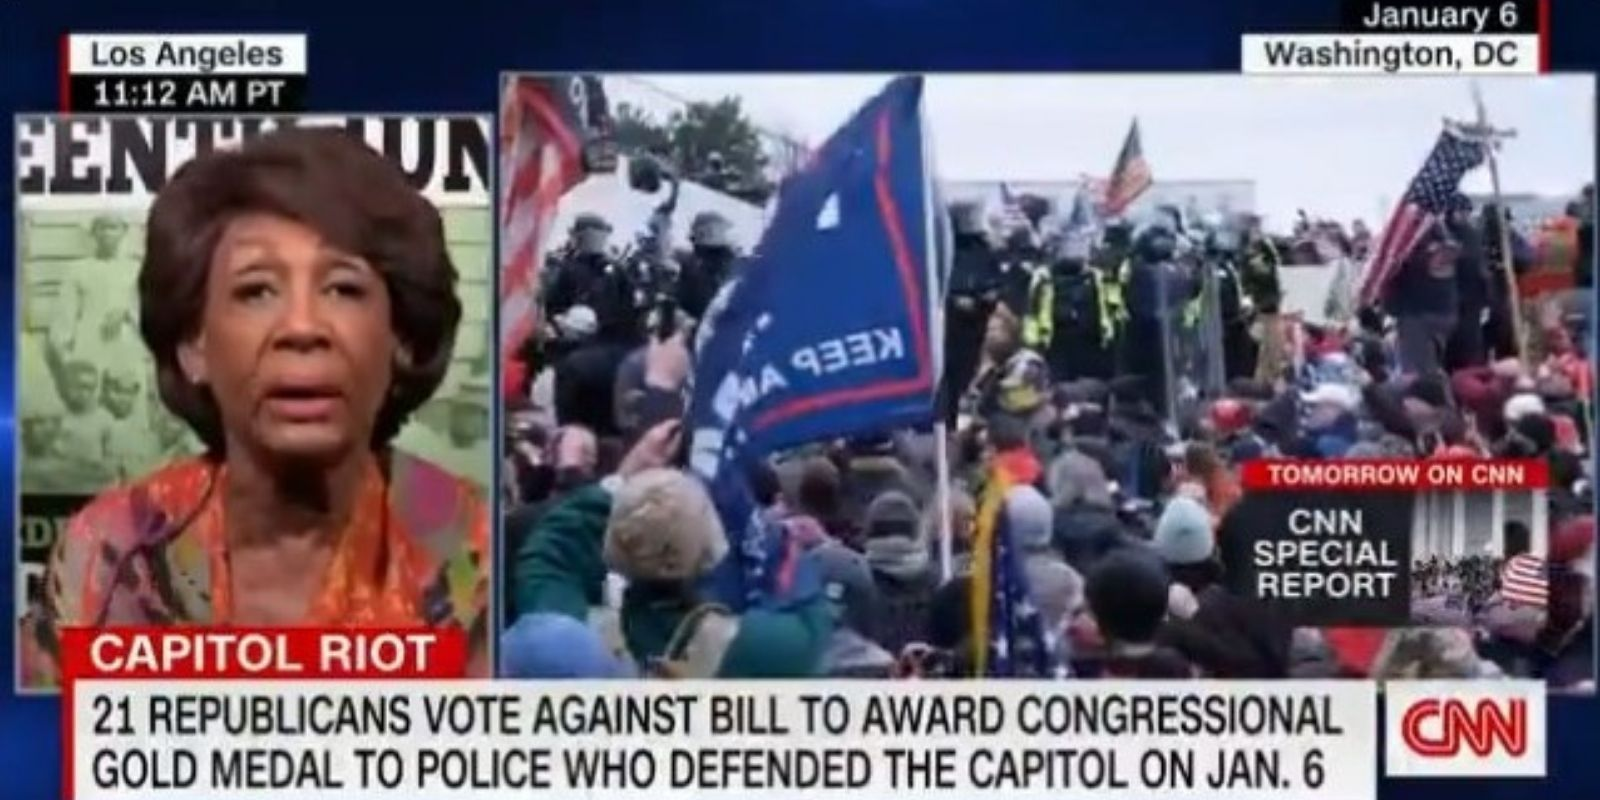 Maxine Waters claims without evidence that the Jan 6 Capitol riot was 'organized' by the Trump campaign